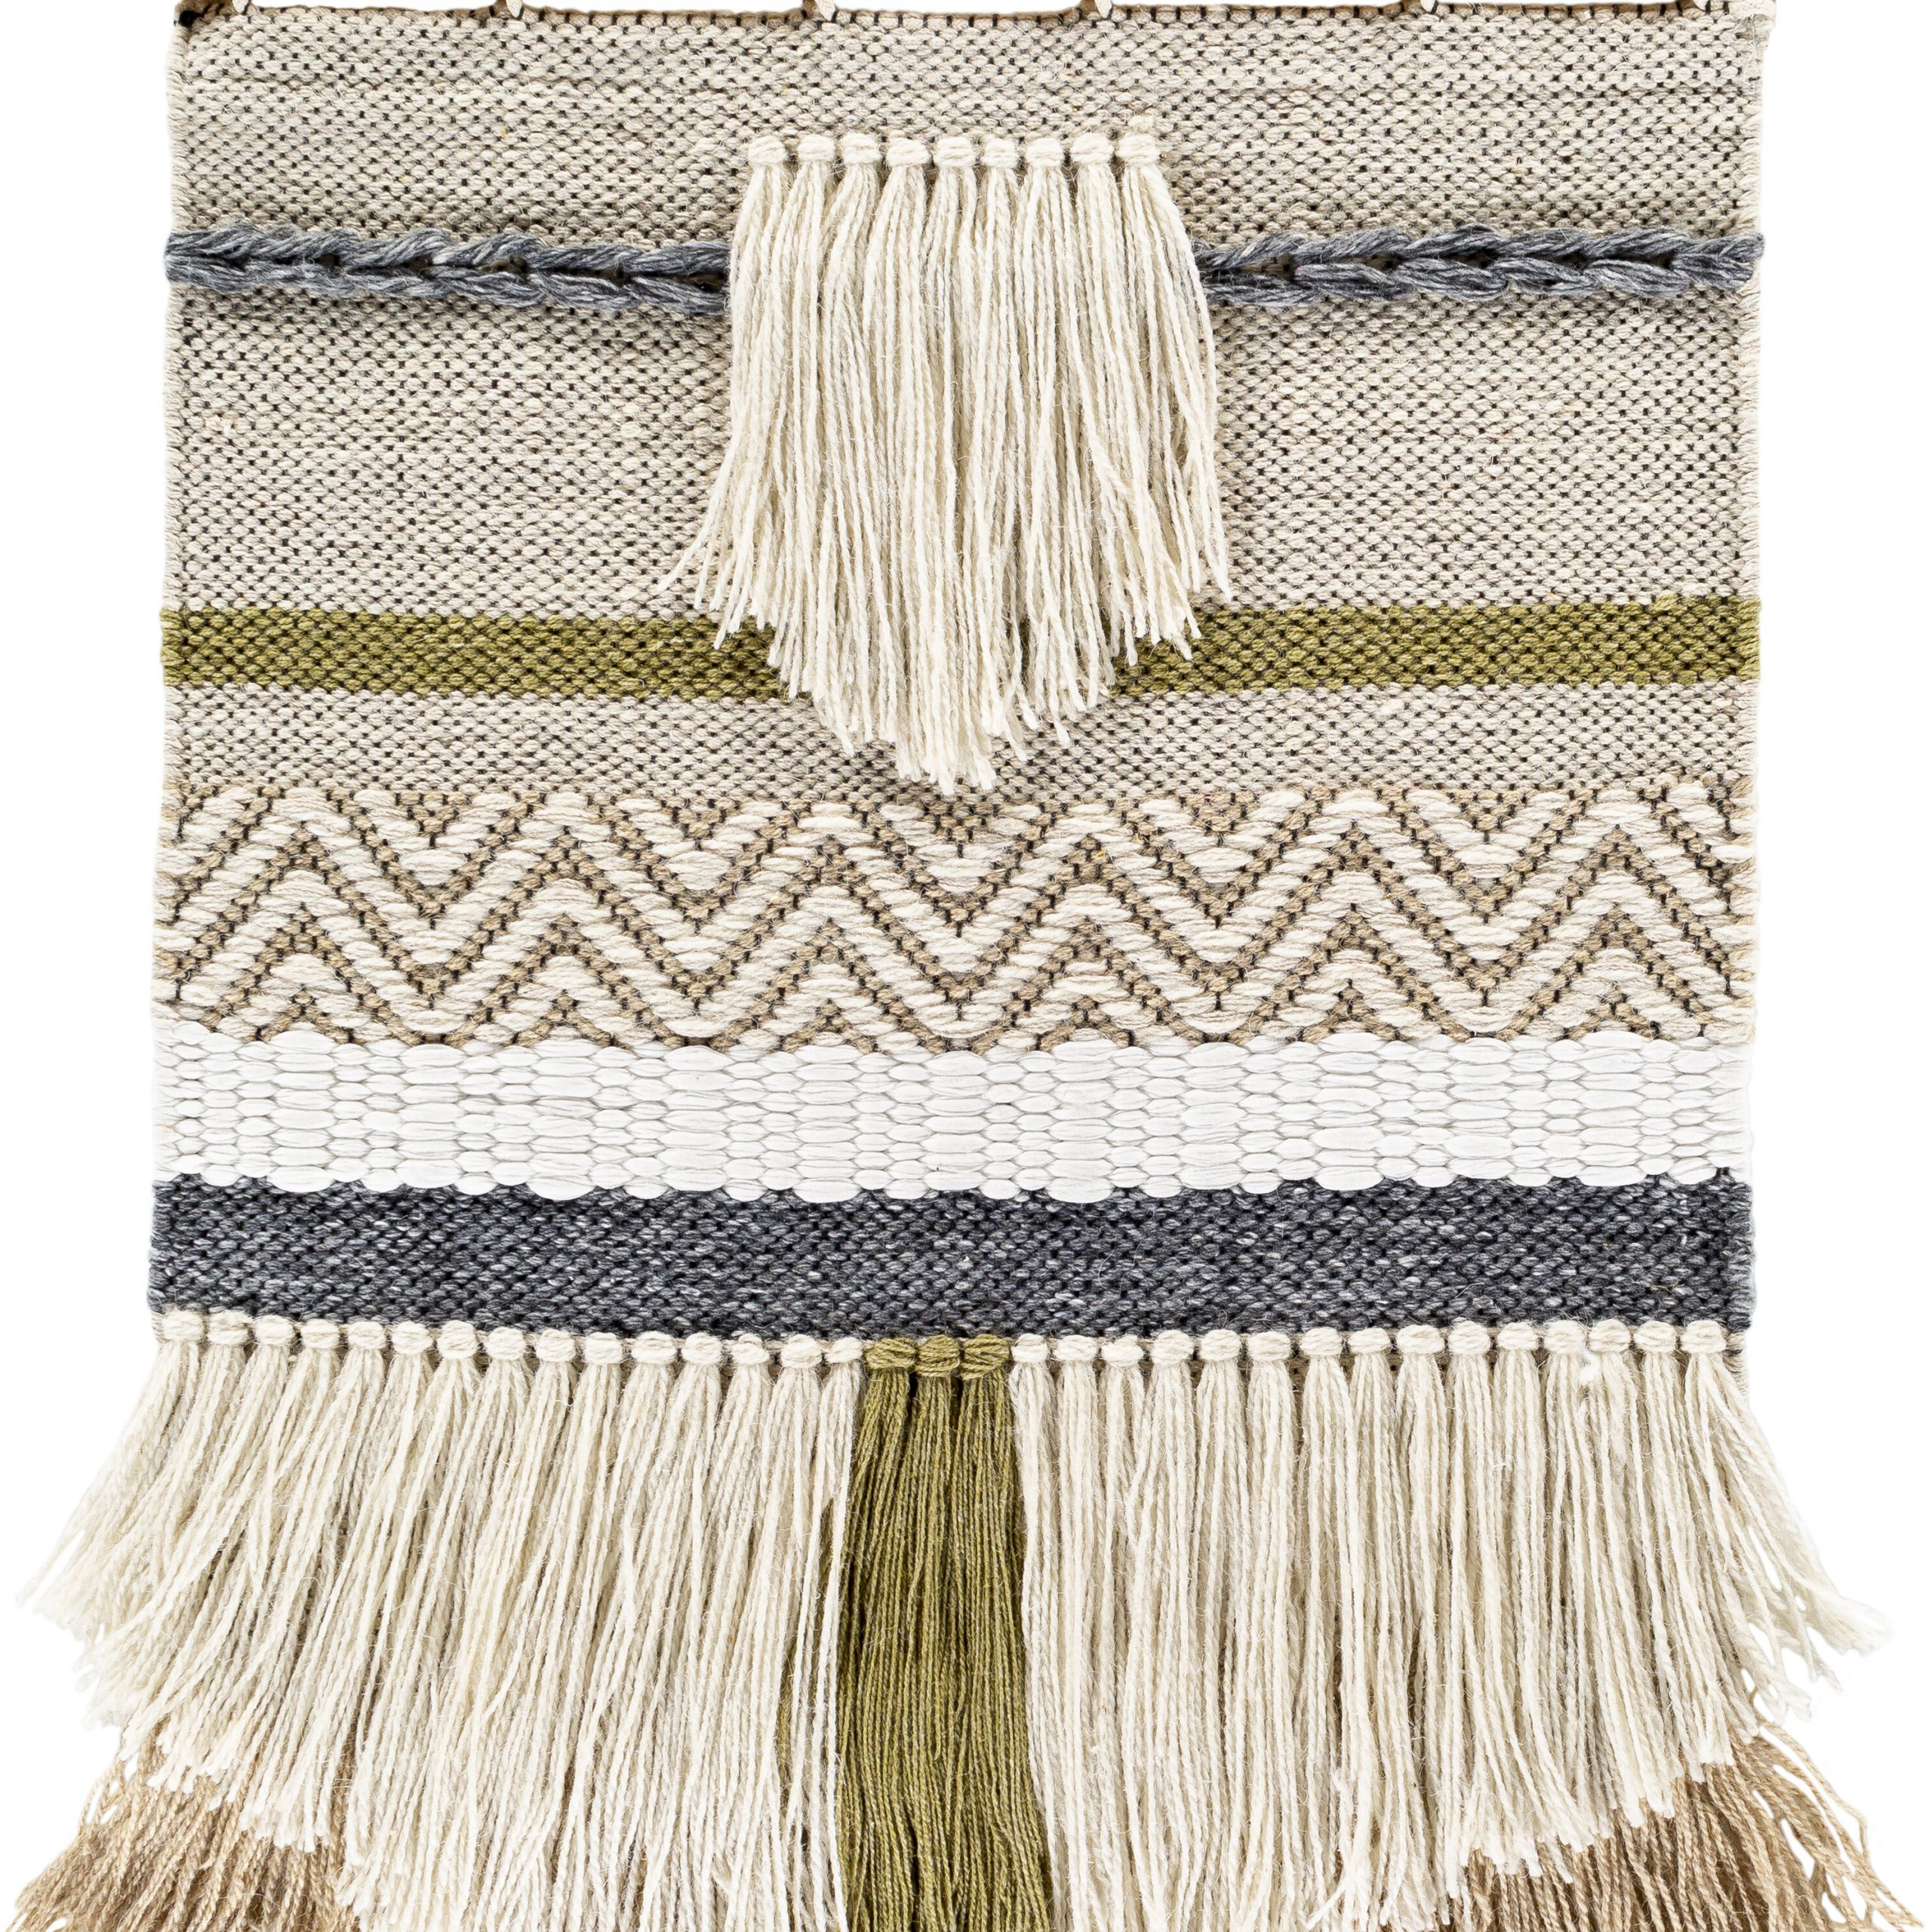 Wayfair Within Most Up To Date Blended Fabric Breeze Of Admiration Woven Tapestries (View 9 of 20)